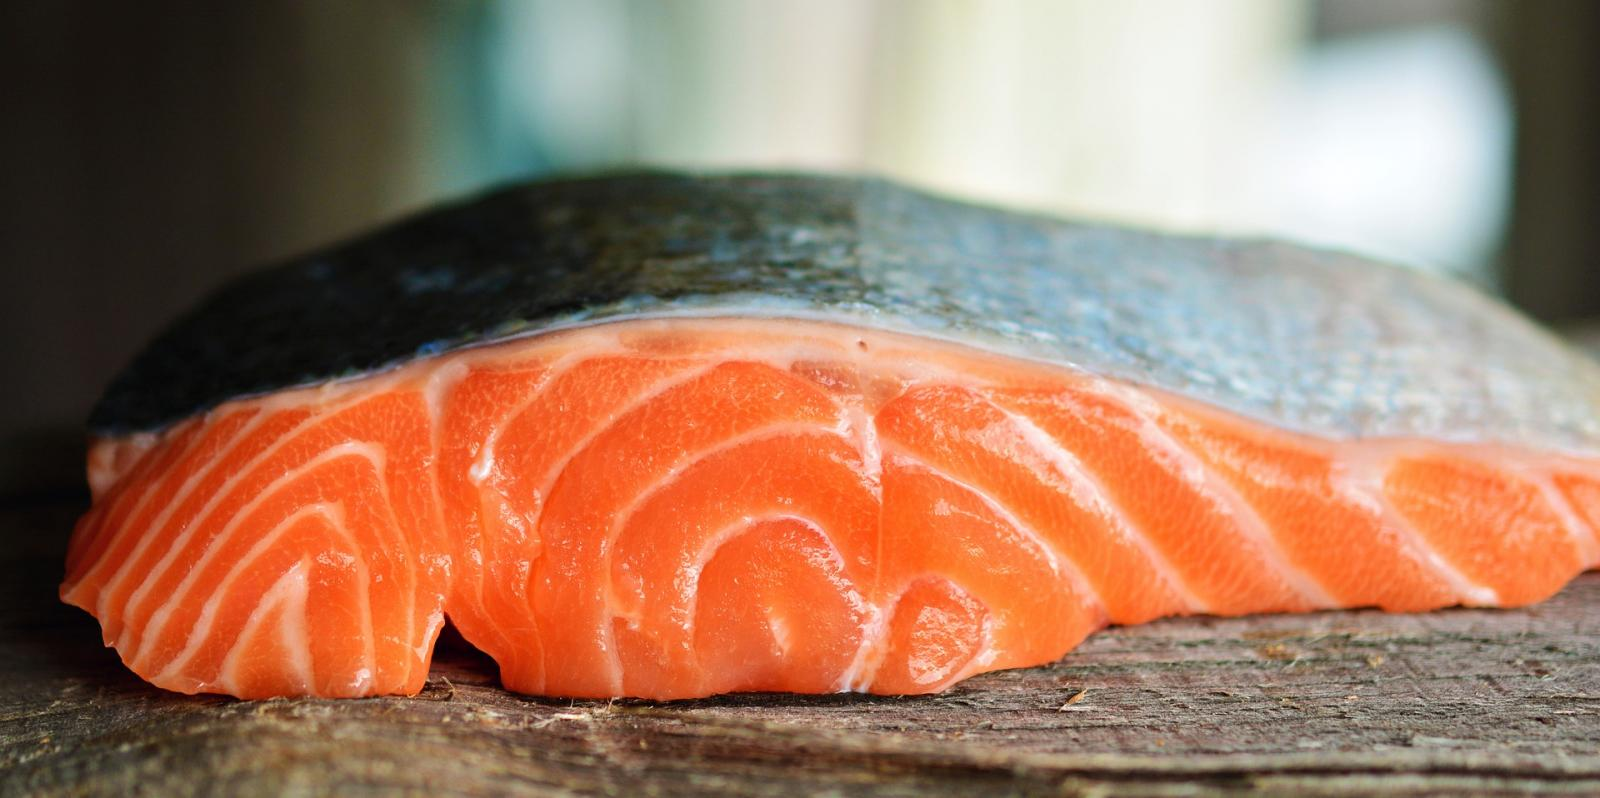 Salmon. Photo credit: Pixabay